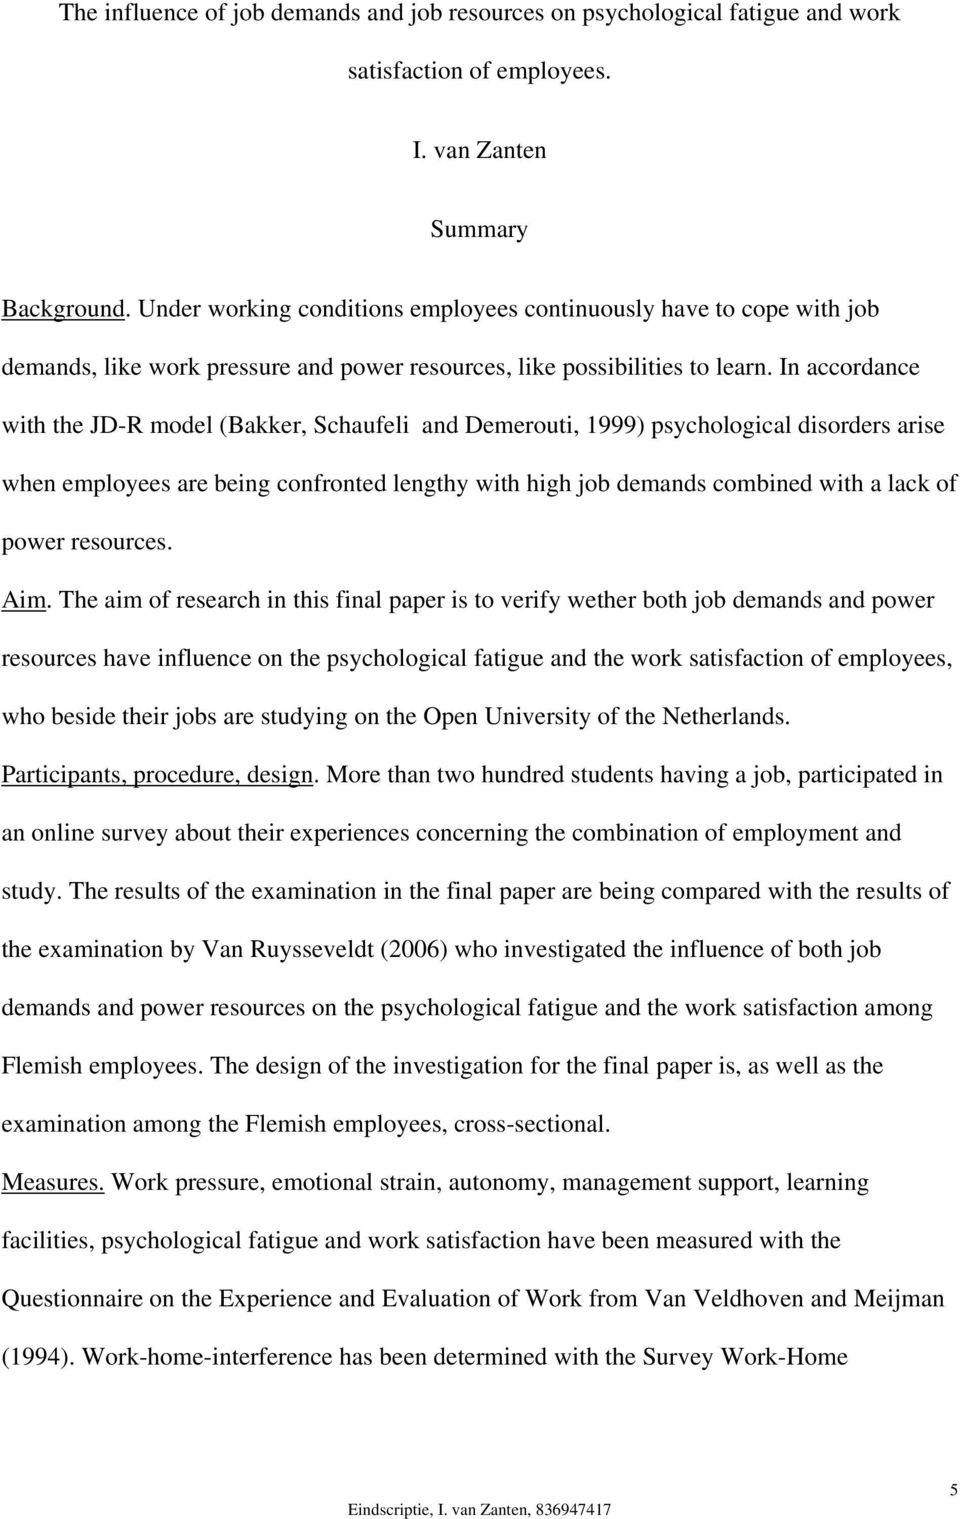 In accordance with the JD-R model (Bakker, Schaufeli and Demerouti, 1999) psychological disorders arise when employees are being confronted lengthy with high job demands combined with a lack of power